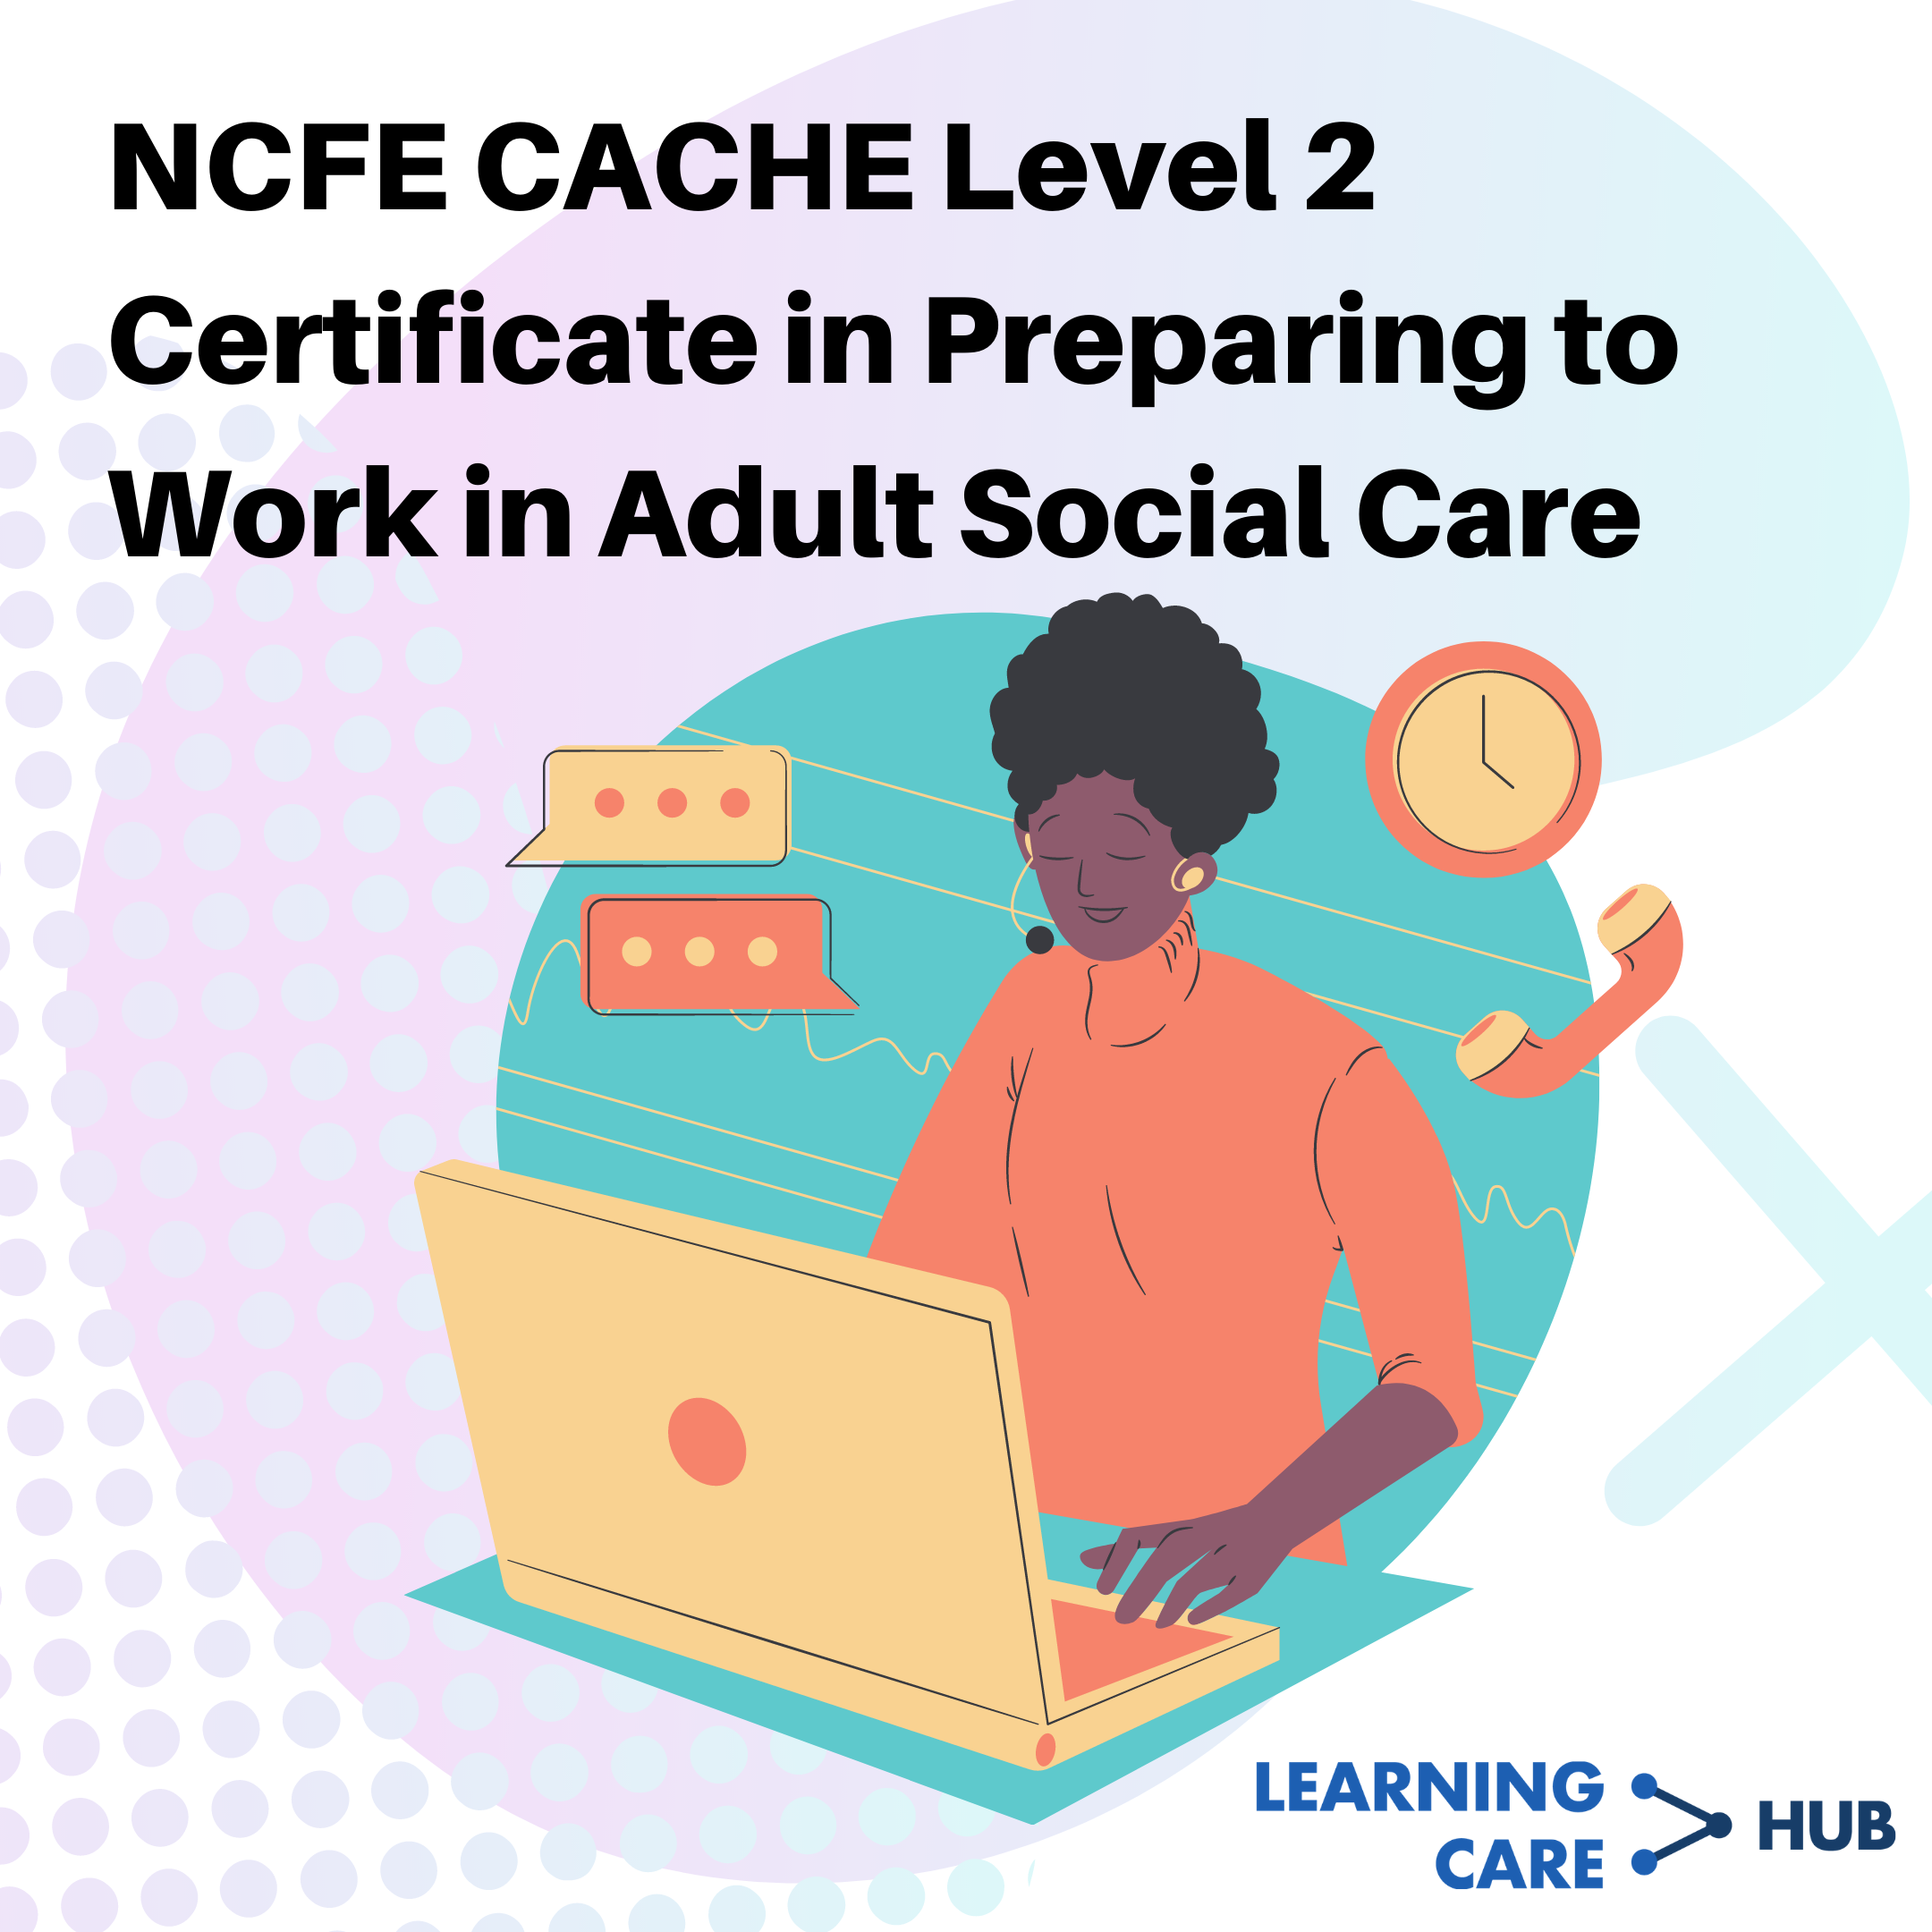 NCFE CACHE Level 2 Certificate in Preparing to Work in Adult Care